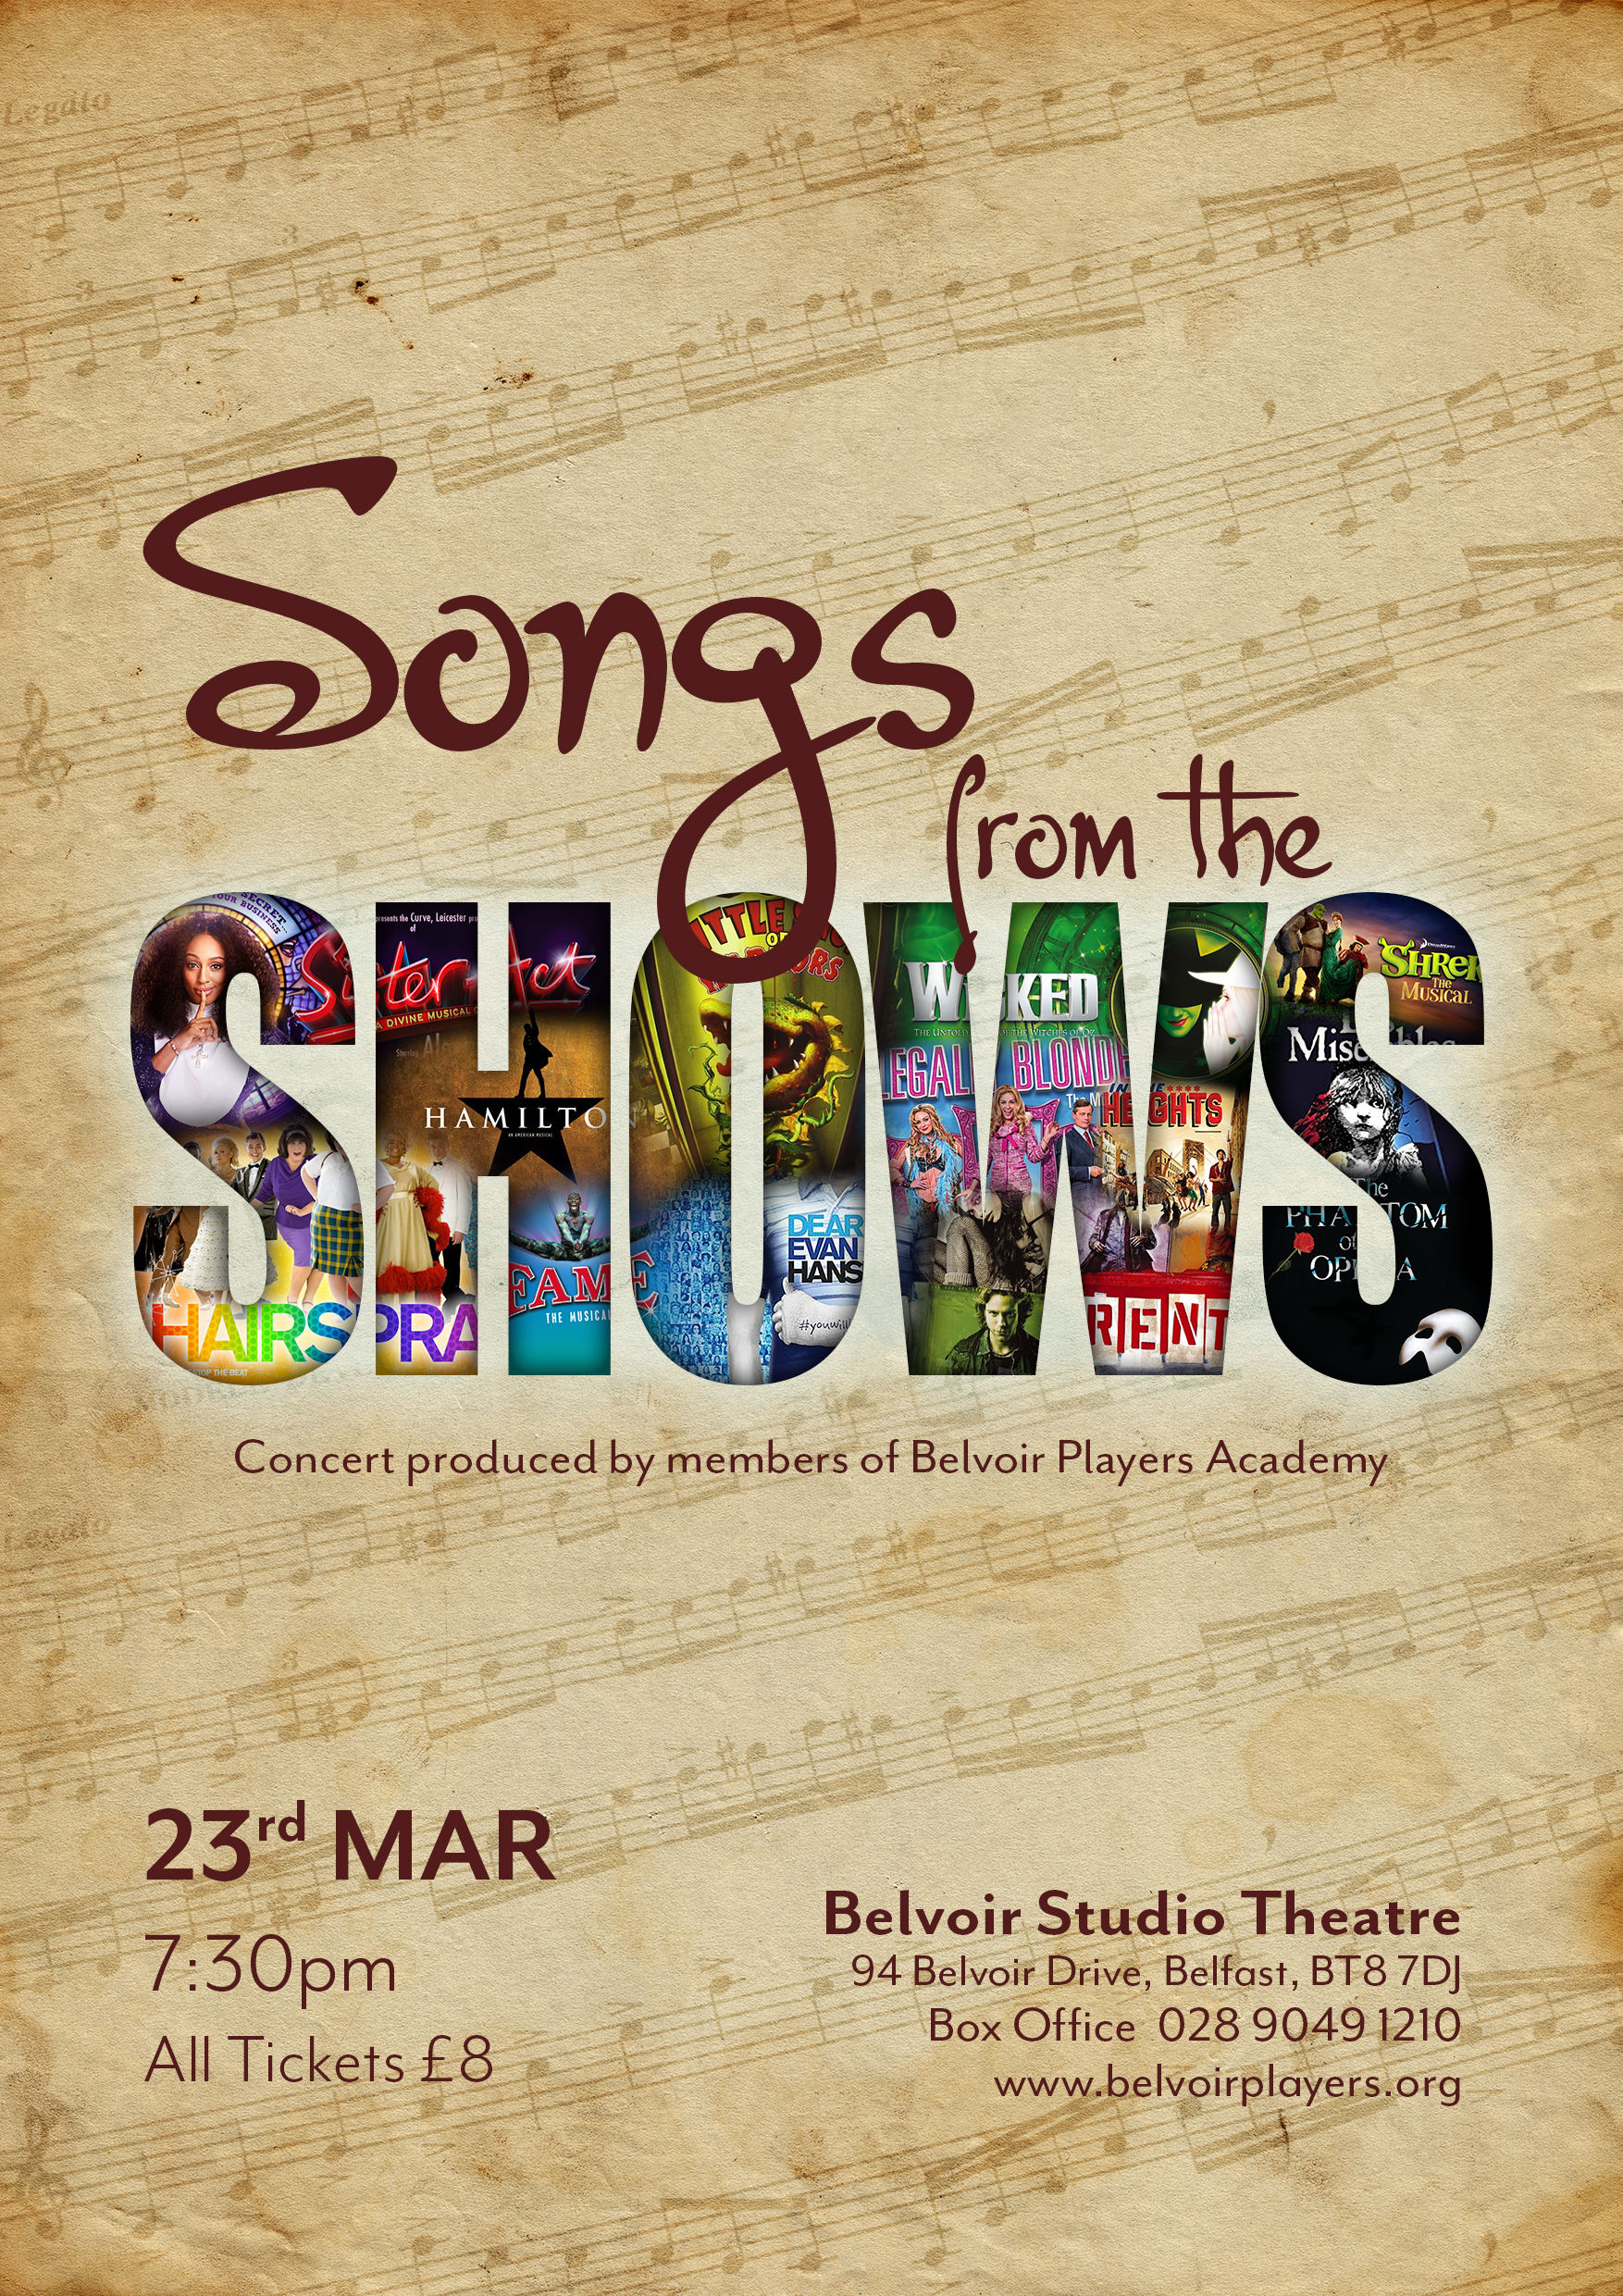 Songs from the shows poster small